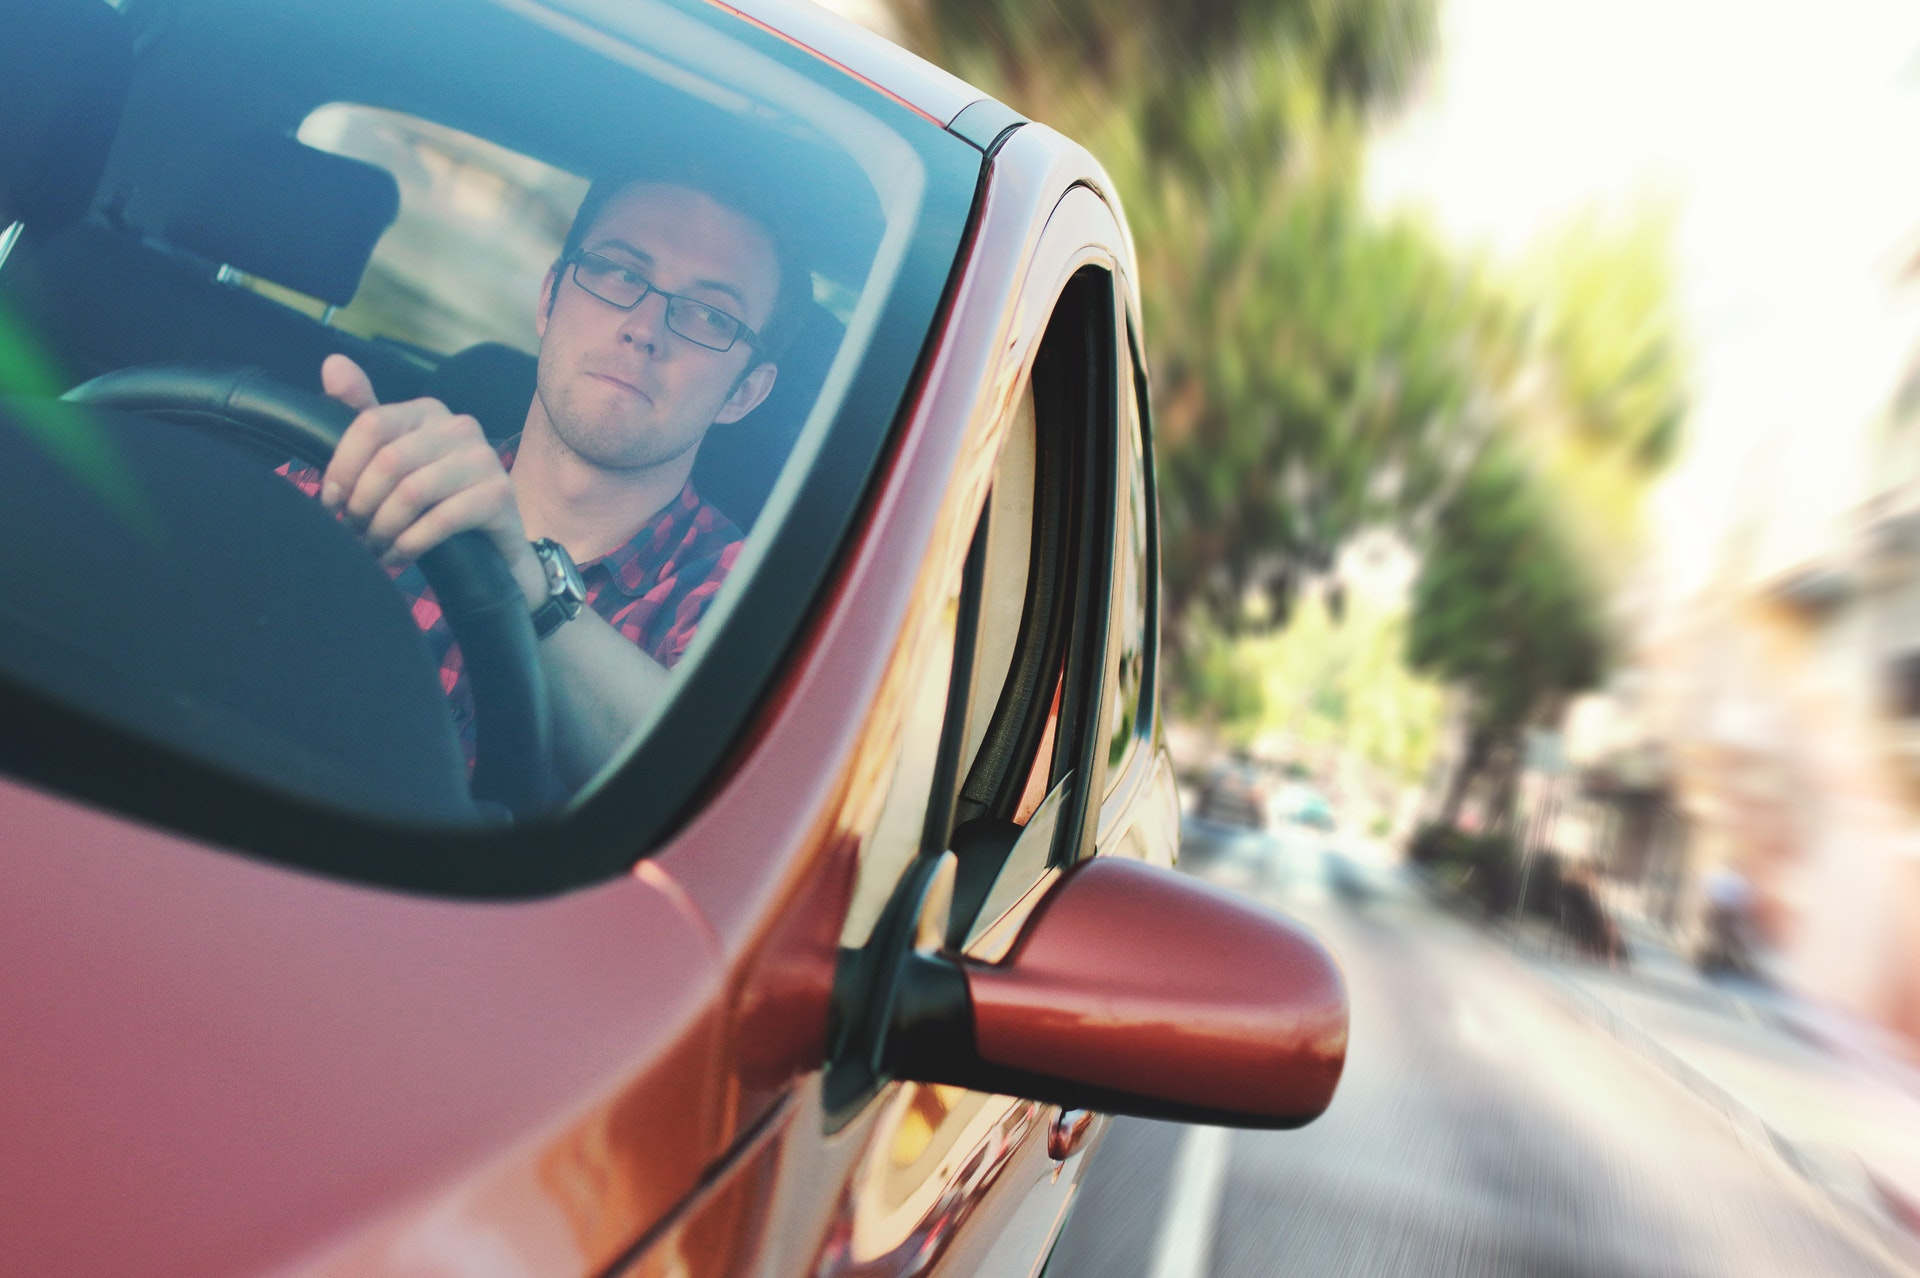 Advice from a Chicago Lawyer After an Uber or Lyft Accident